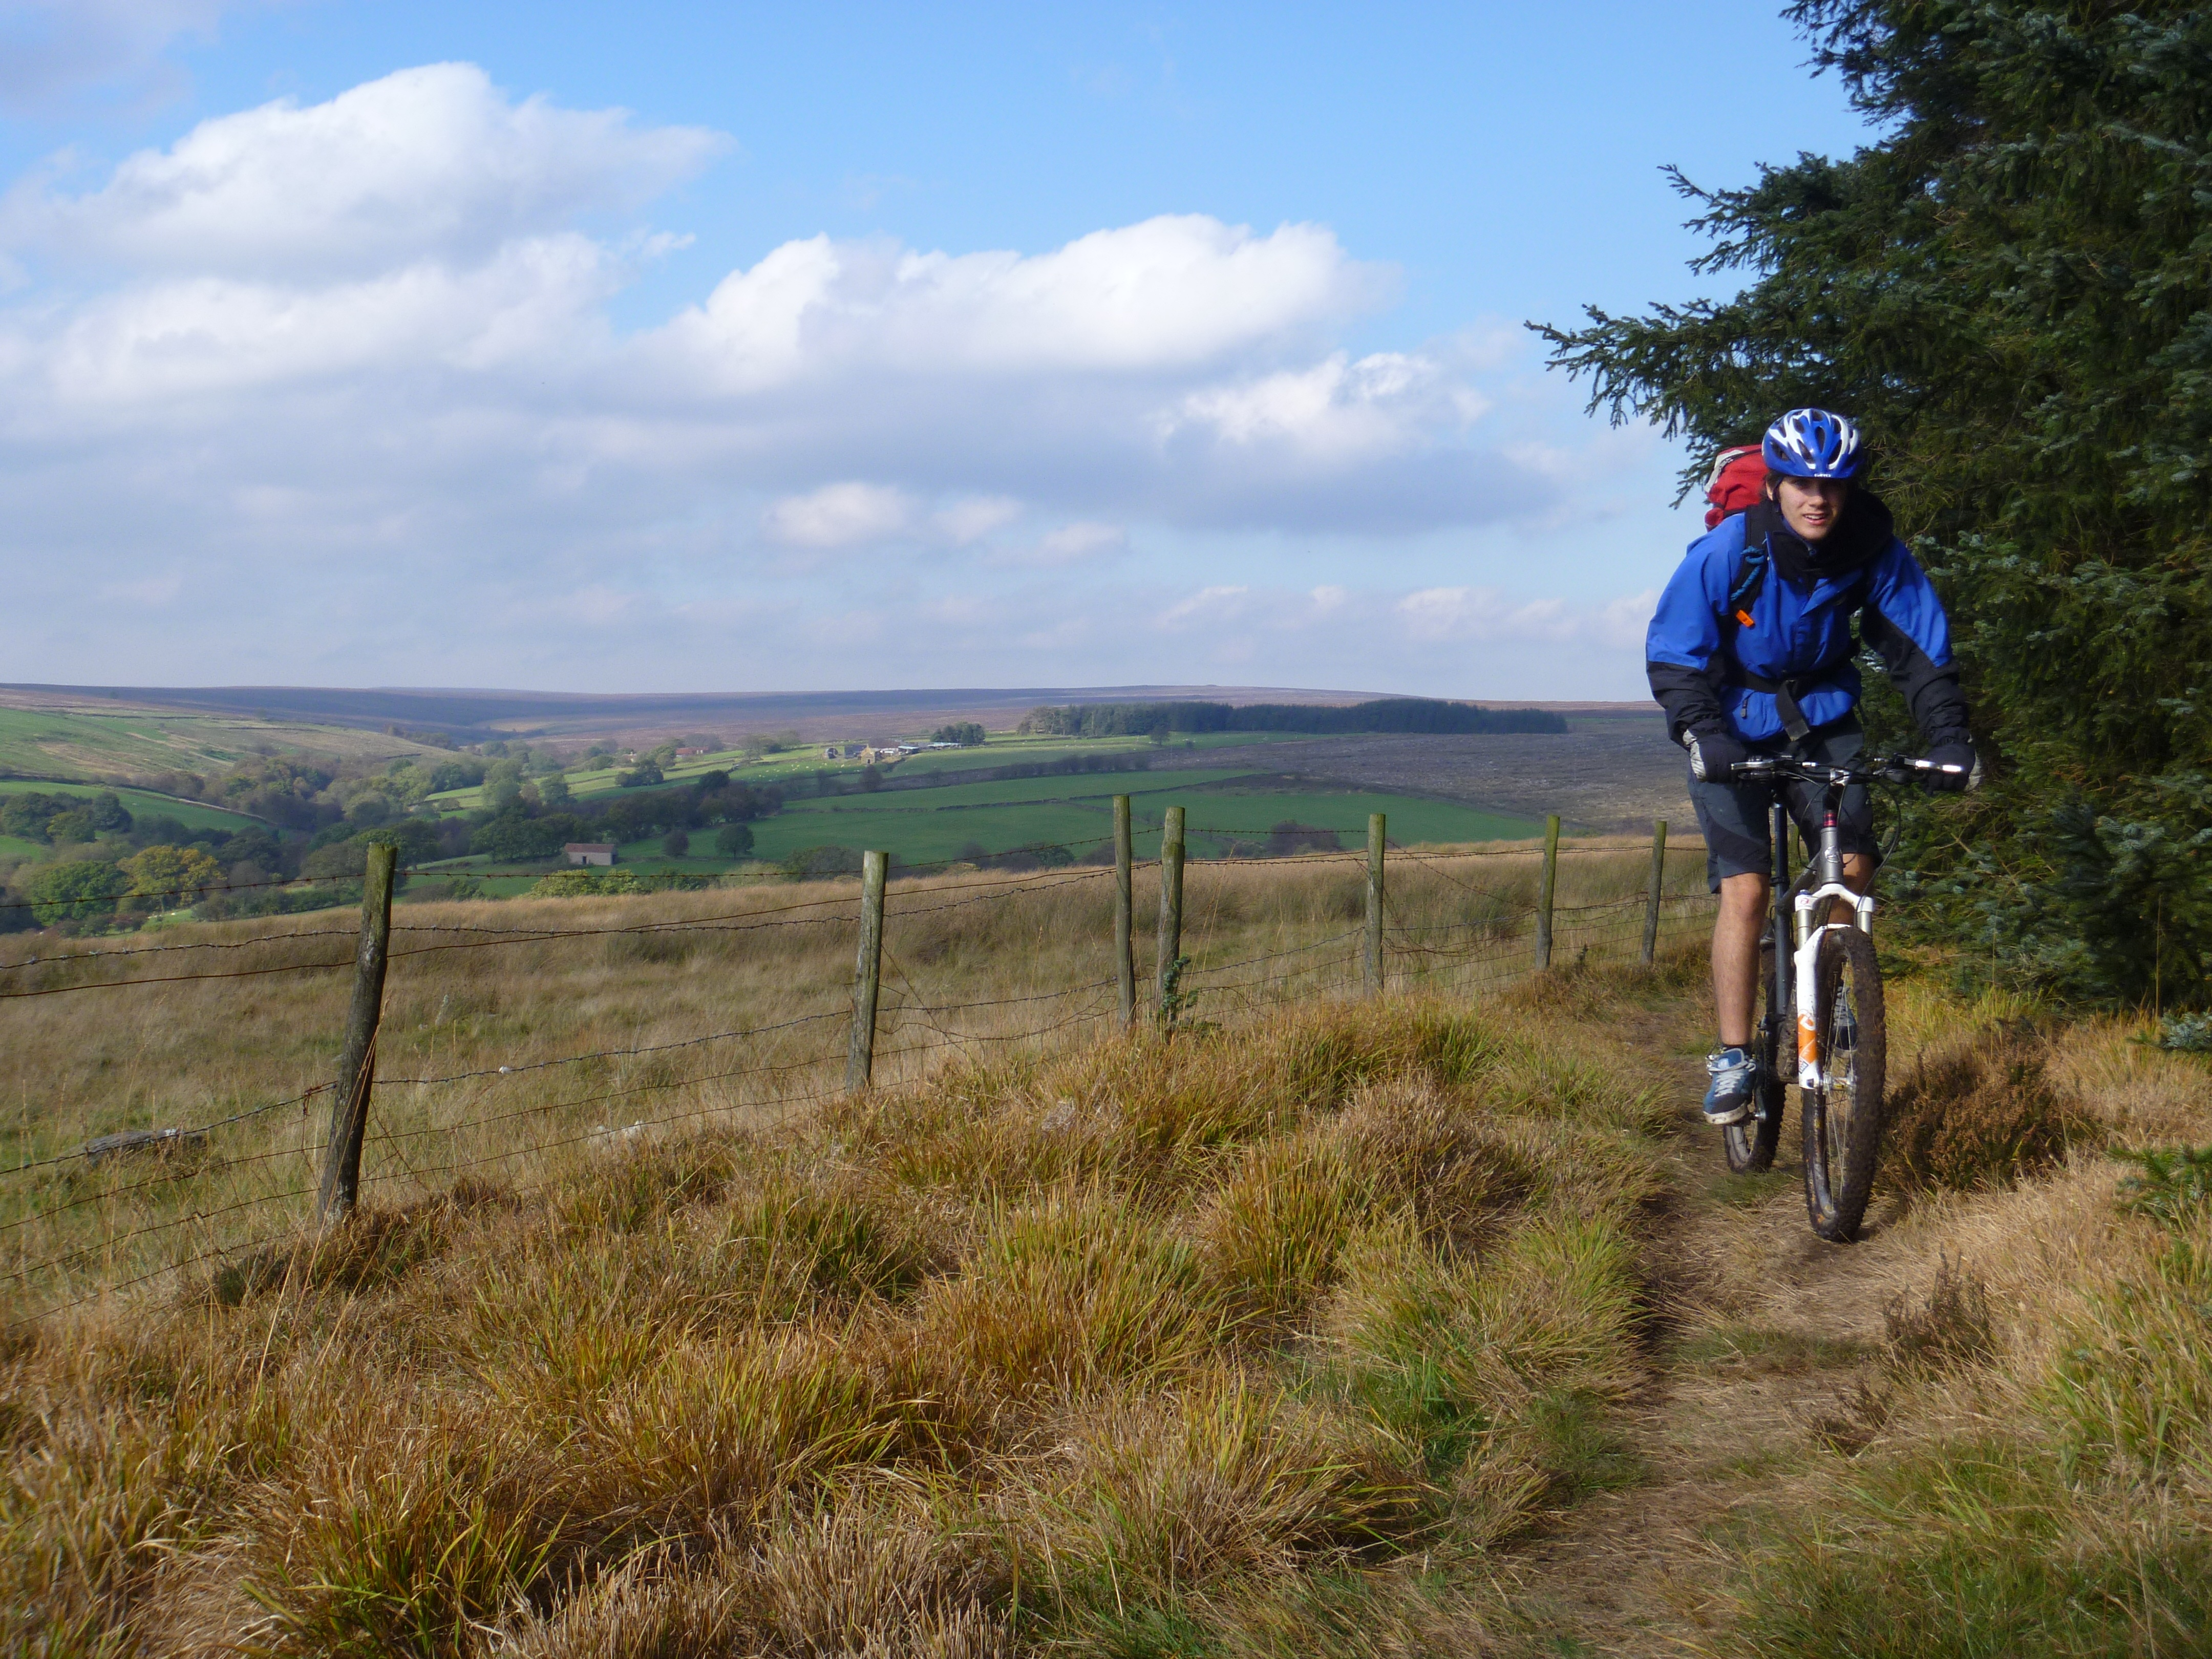 The mountain biking event took place in and around the York area, introducing essential biking skills to people new to the sport